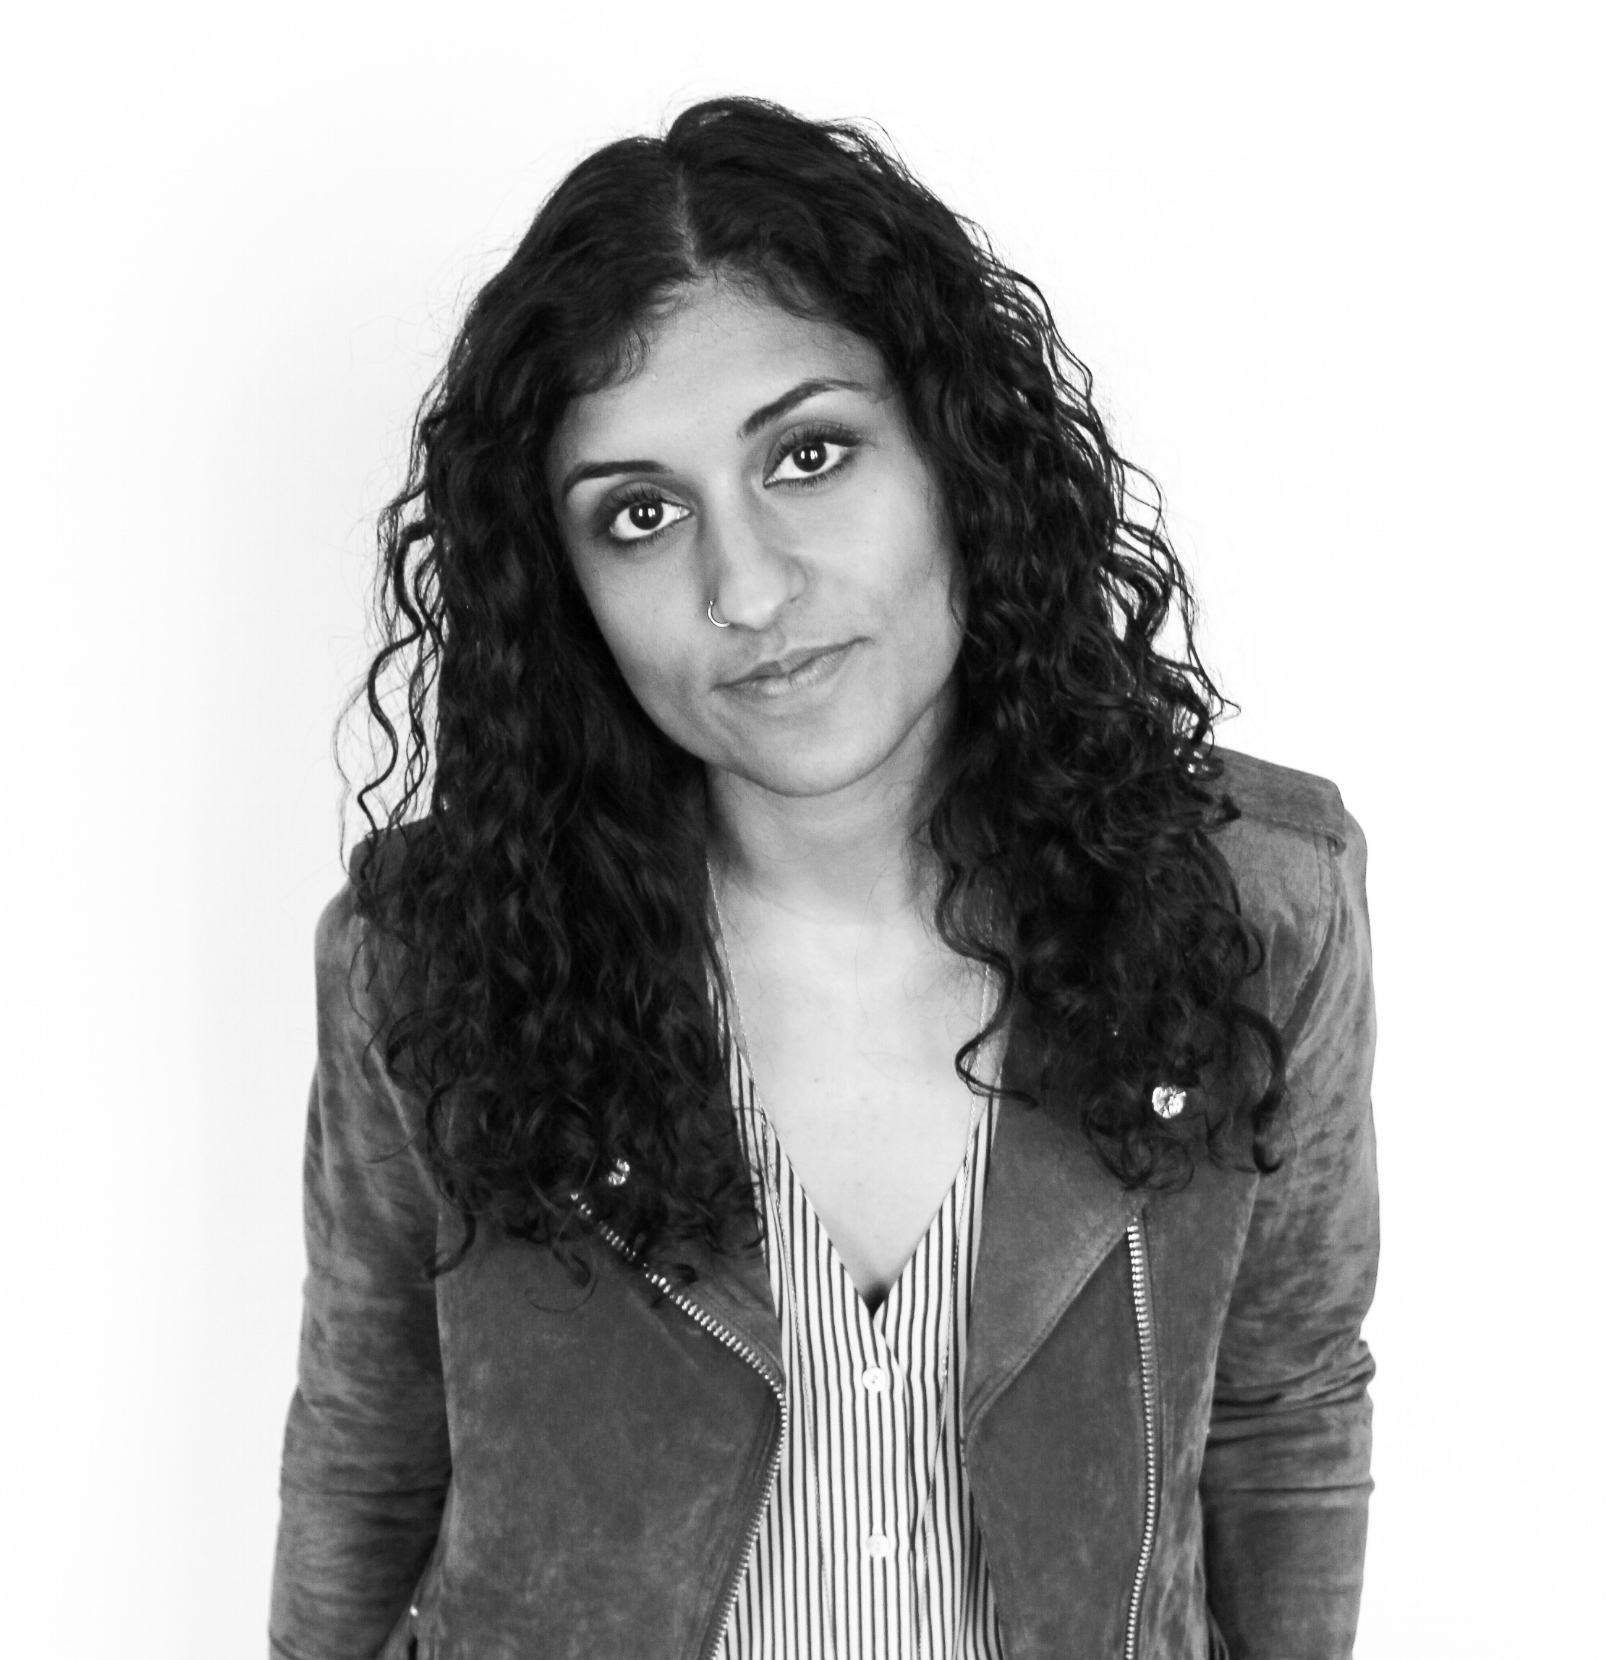 Sukhpreet Sangha  is a lawyer and artist. After studying theatre and English at the University of Waterloo, she studied law at Osgoode Hall and now questions that decision regularly. She practiced as a criminal defense lawyer in the GTA for a number of years, appearing before all levels of court in Ontario (which is meaningful to some). She is currently practicing poverty law at a community legal clinic. Sukhpreet also writes, directs, and acts. Most recently, she appeared in Theatre of the Beat's British Columbia tour of  Forgiven/Forgotten . She struggles and strives to live a a life that both allows her to use her legal education to help those who are being marginalized and to find opportunities to feed her creative impulses.